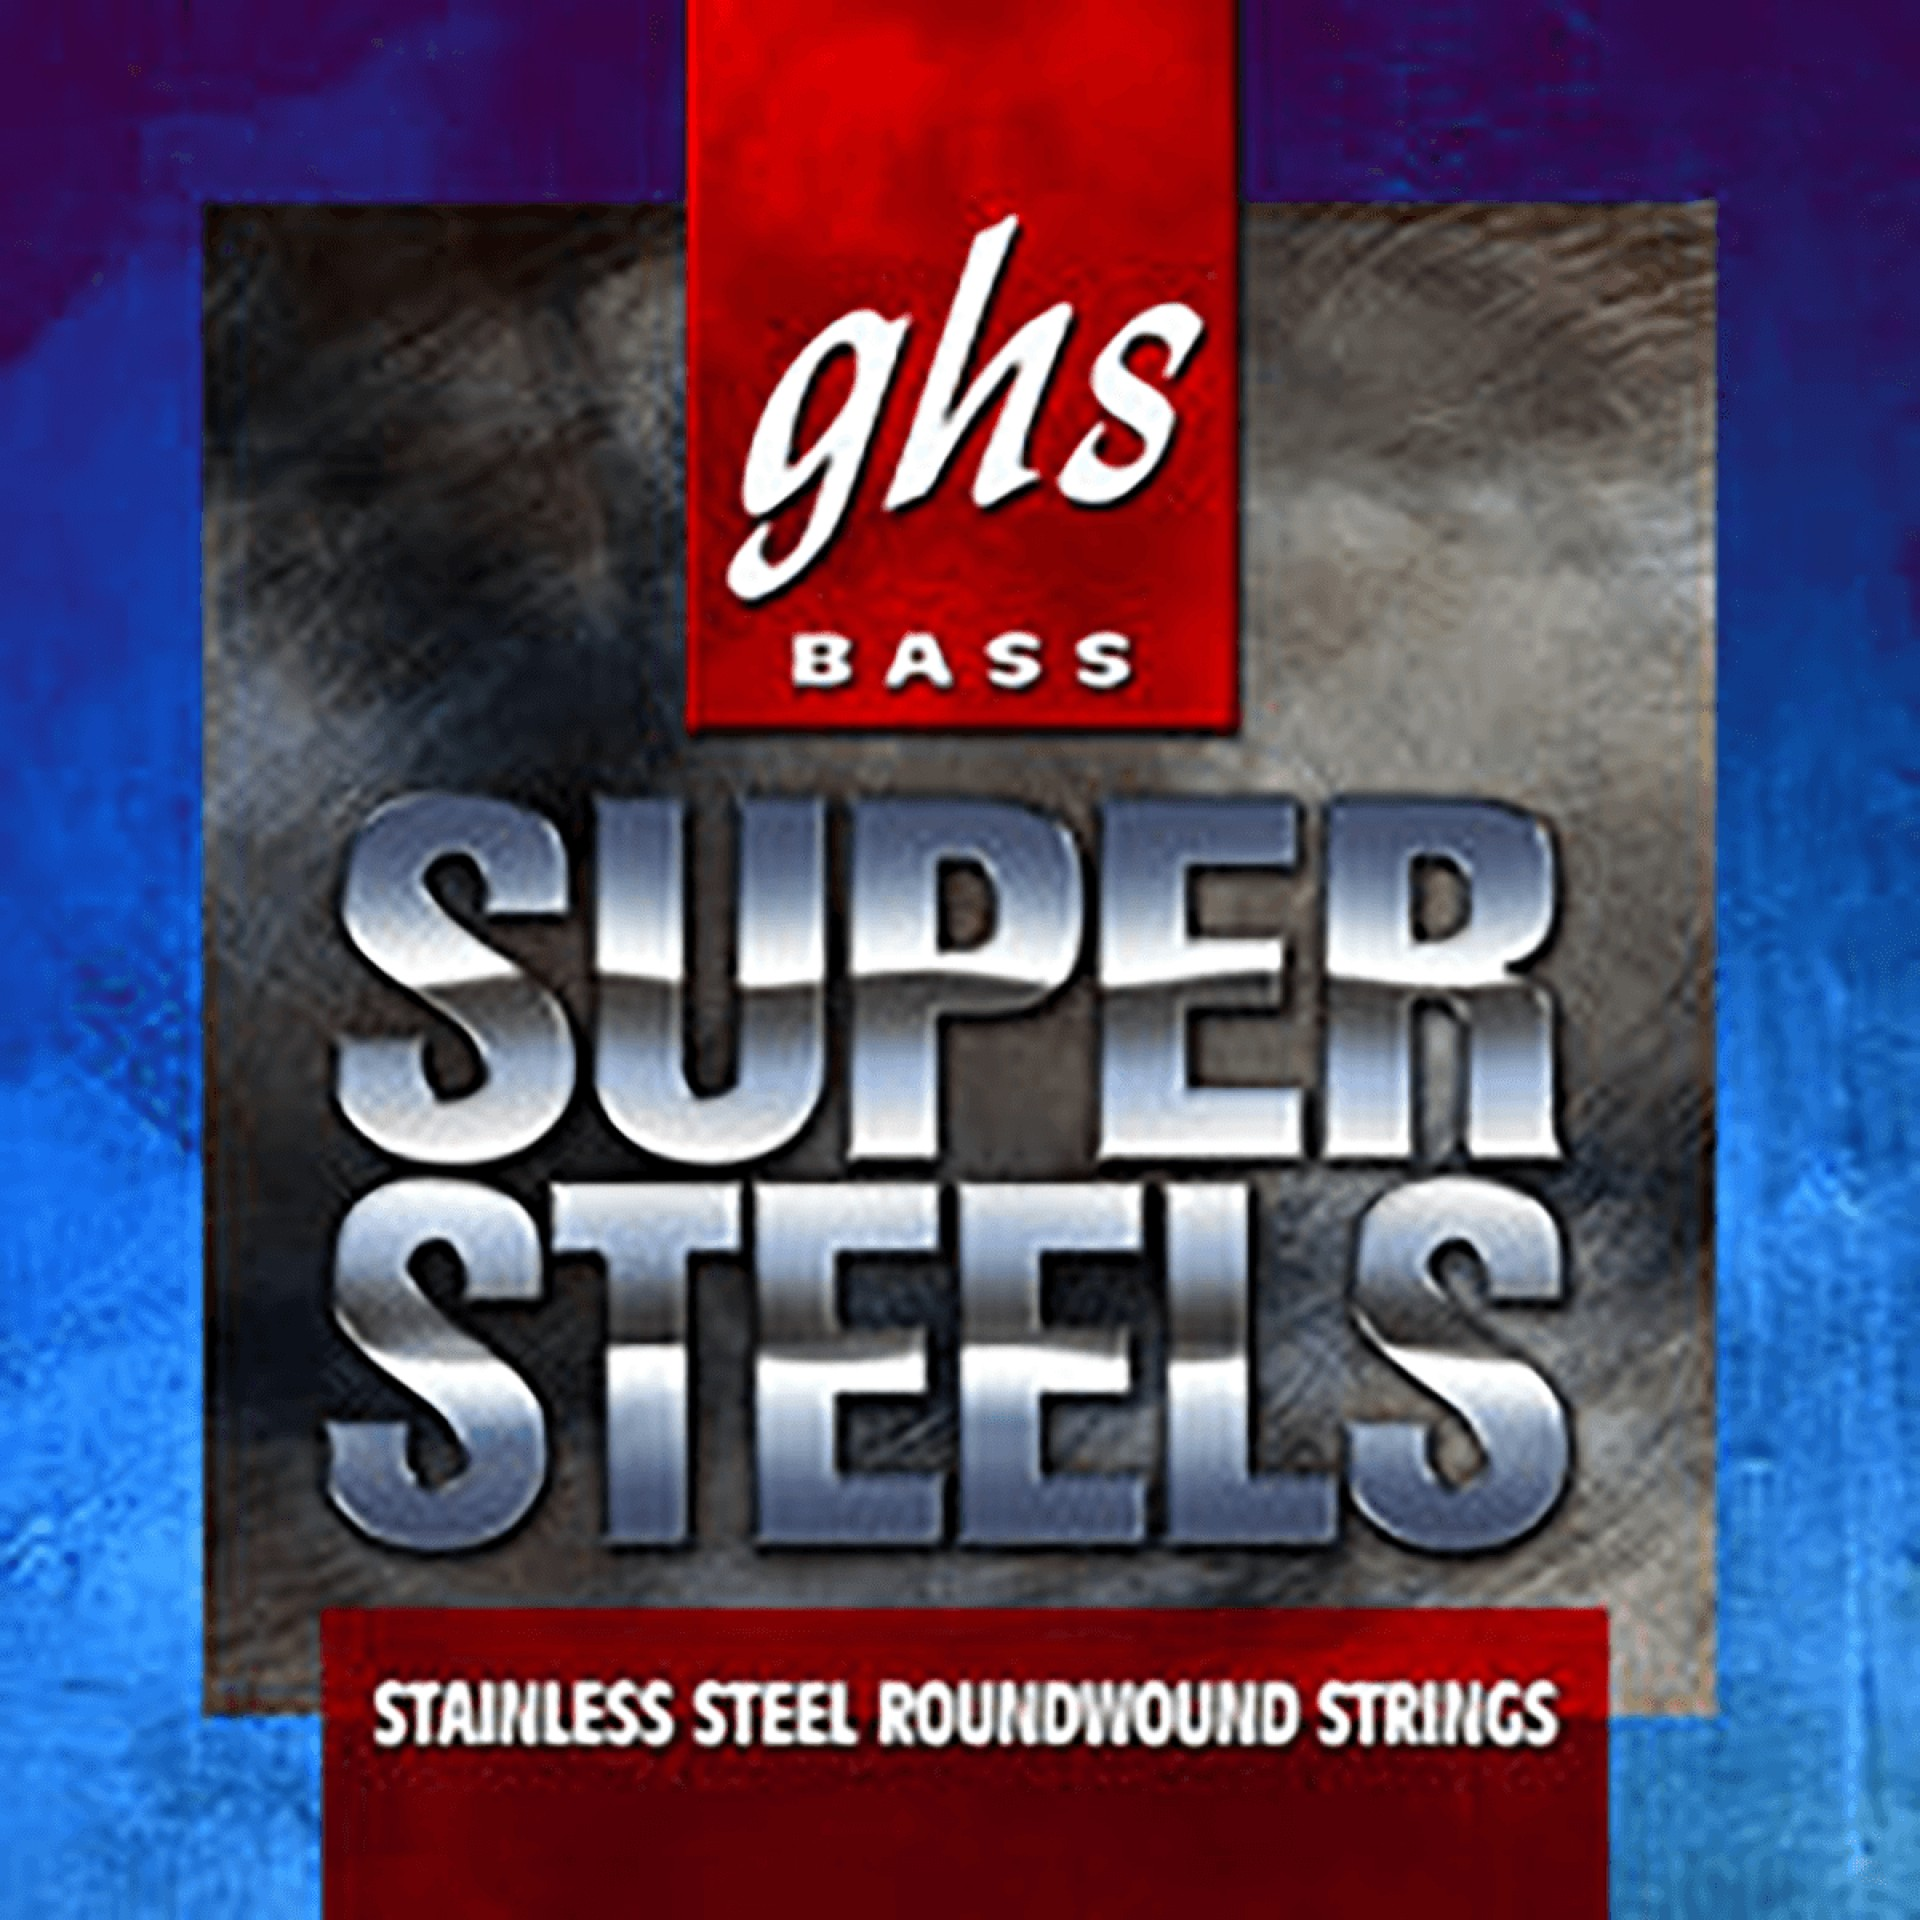 GHS 5M-STB Super Steels Stainless Steel Electric Bass Strings Long Scale - 5-String 44-126